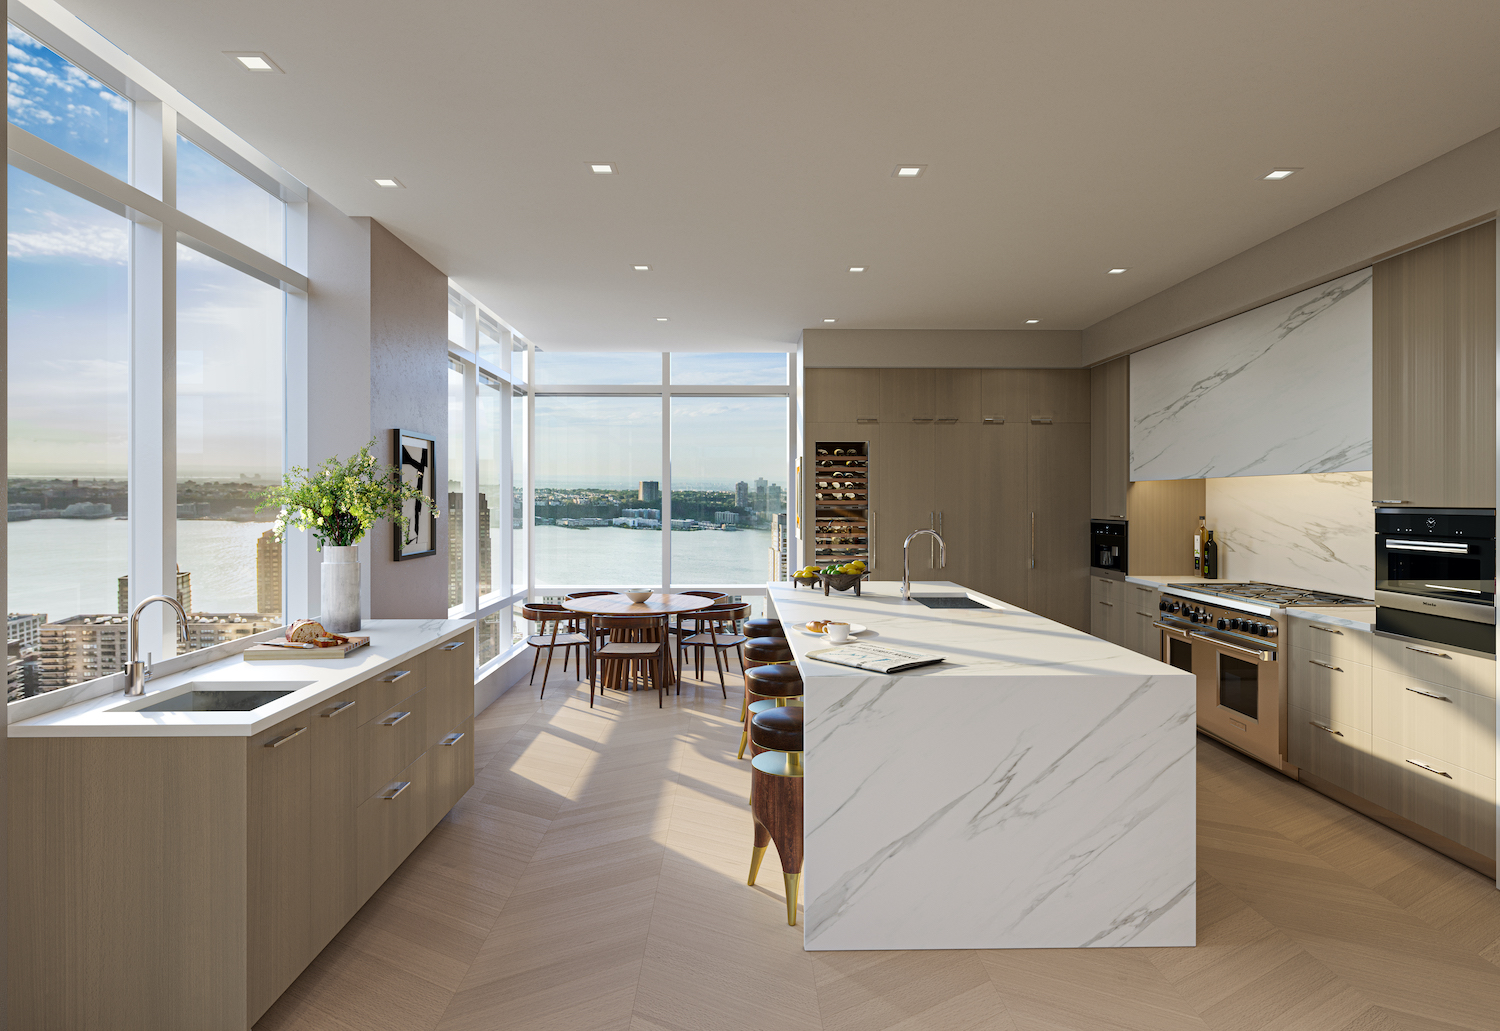 Penthouse kitchen at 200 Amsterdam on the Upper West Side